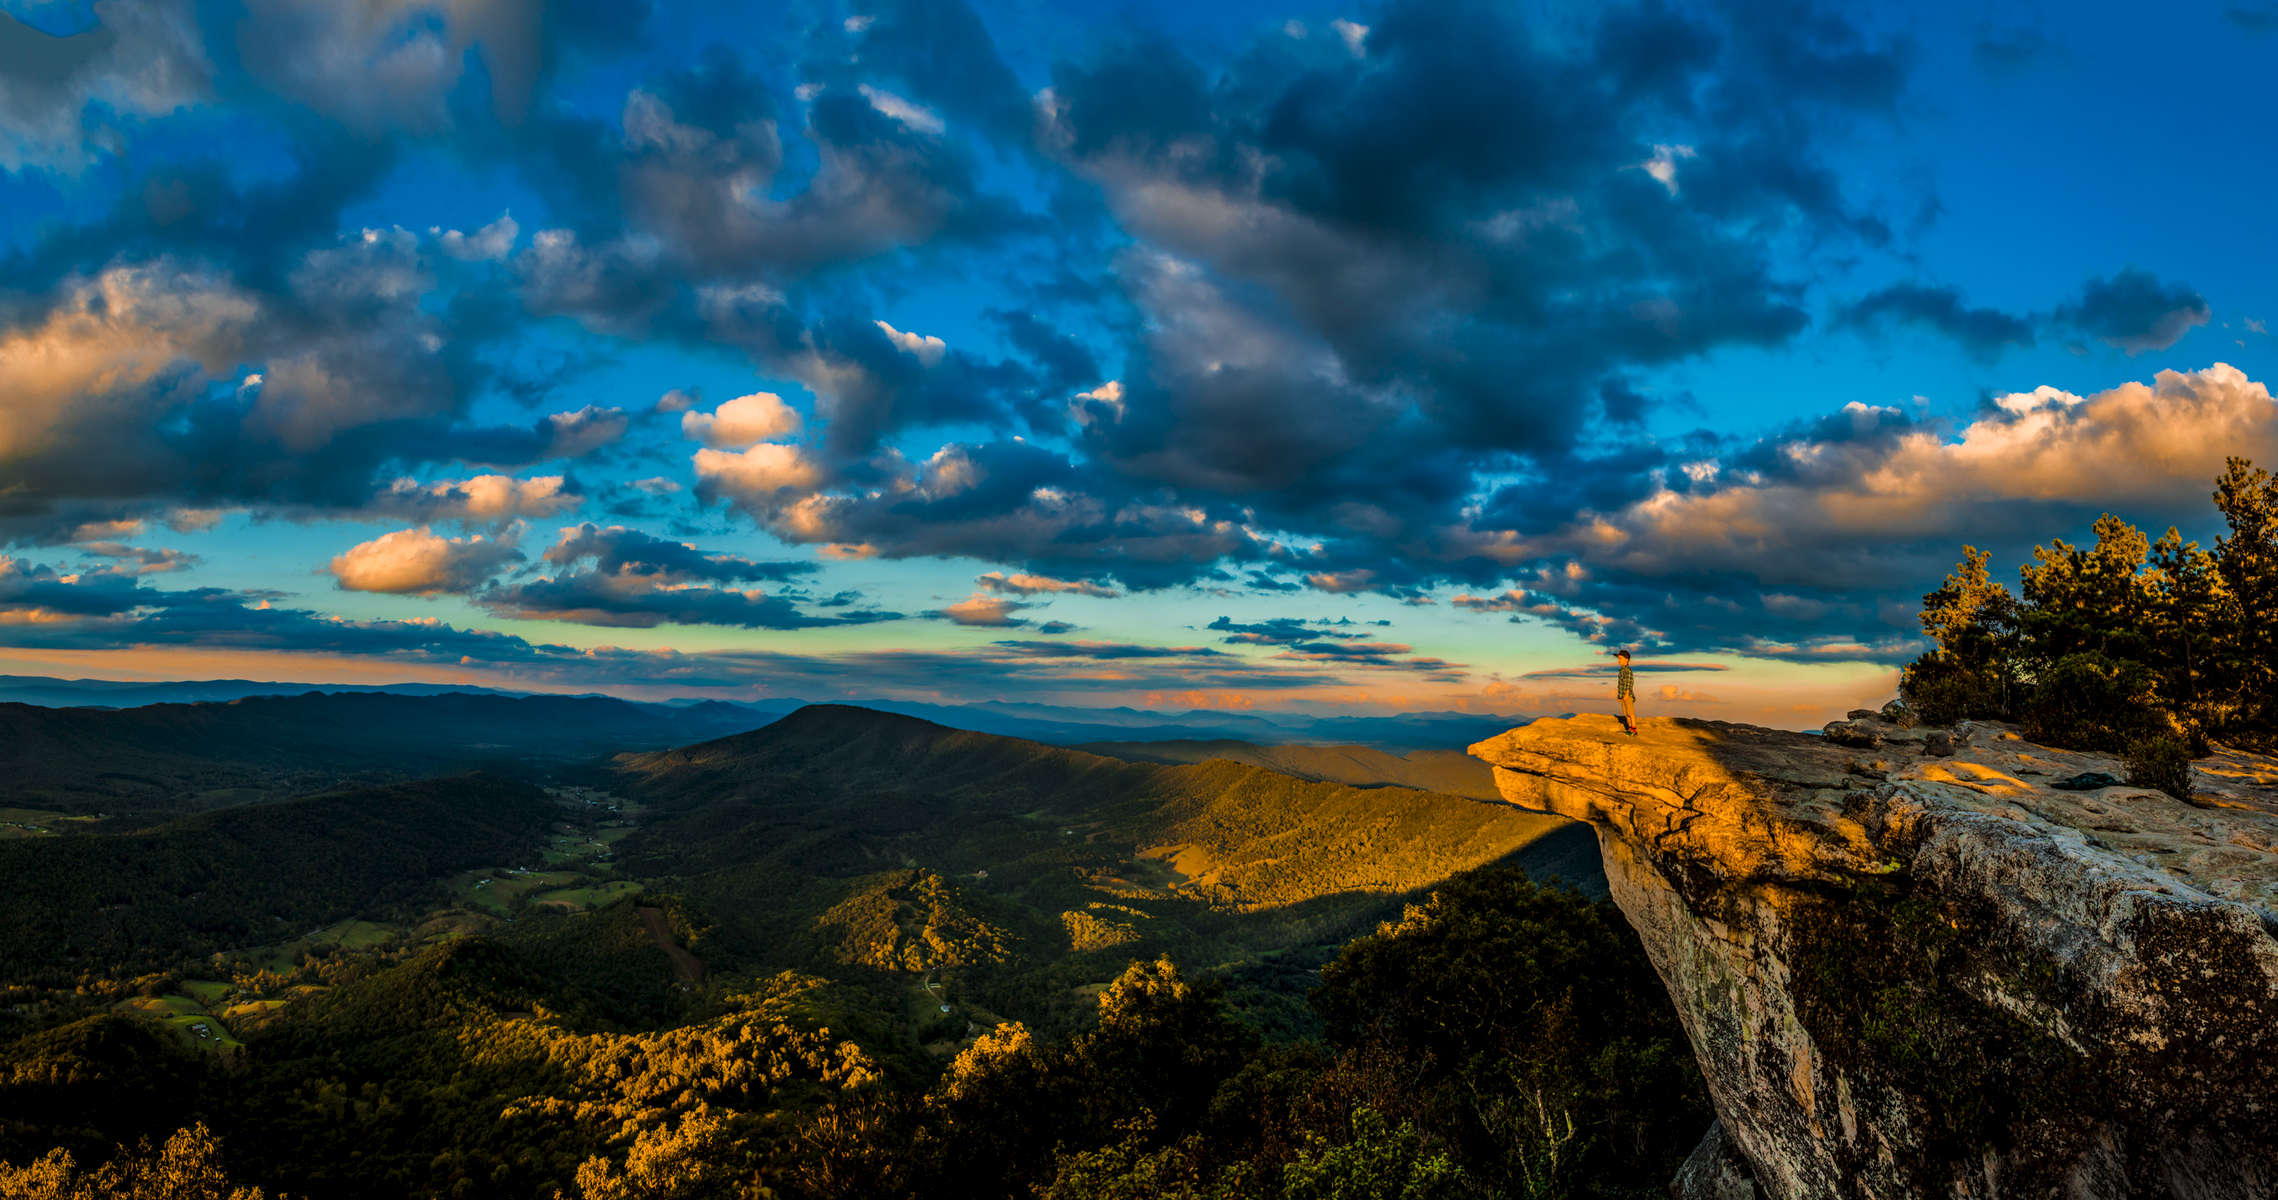 Boy standing on Mcafee Knob on the appalachain trail outside Roanoke, Virginia in the Blue Ridge Mountains.